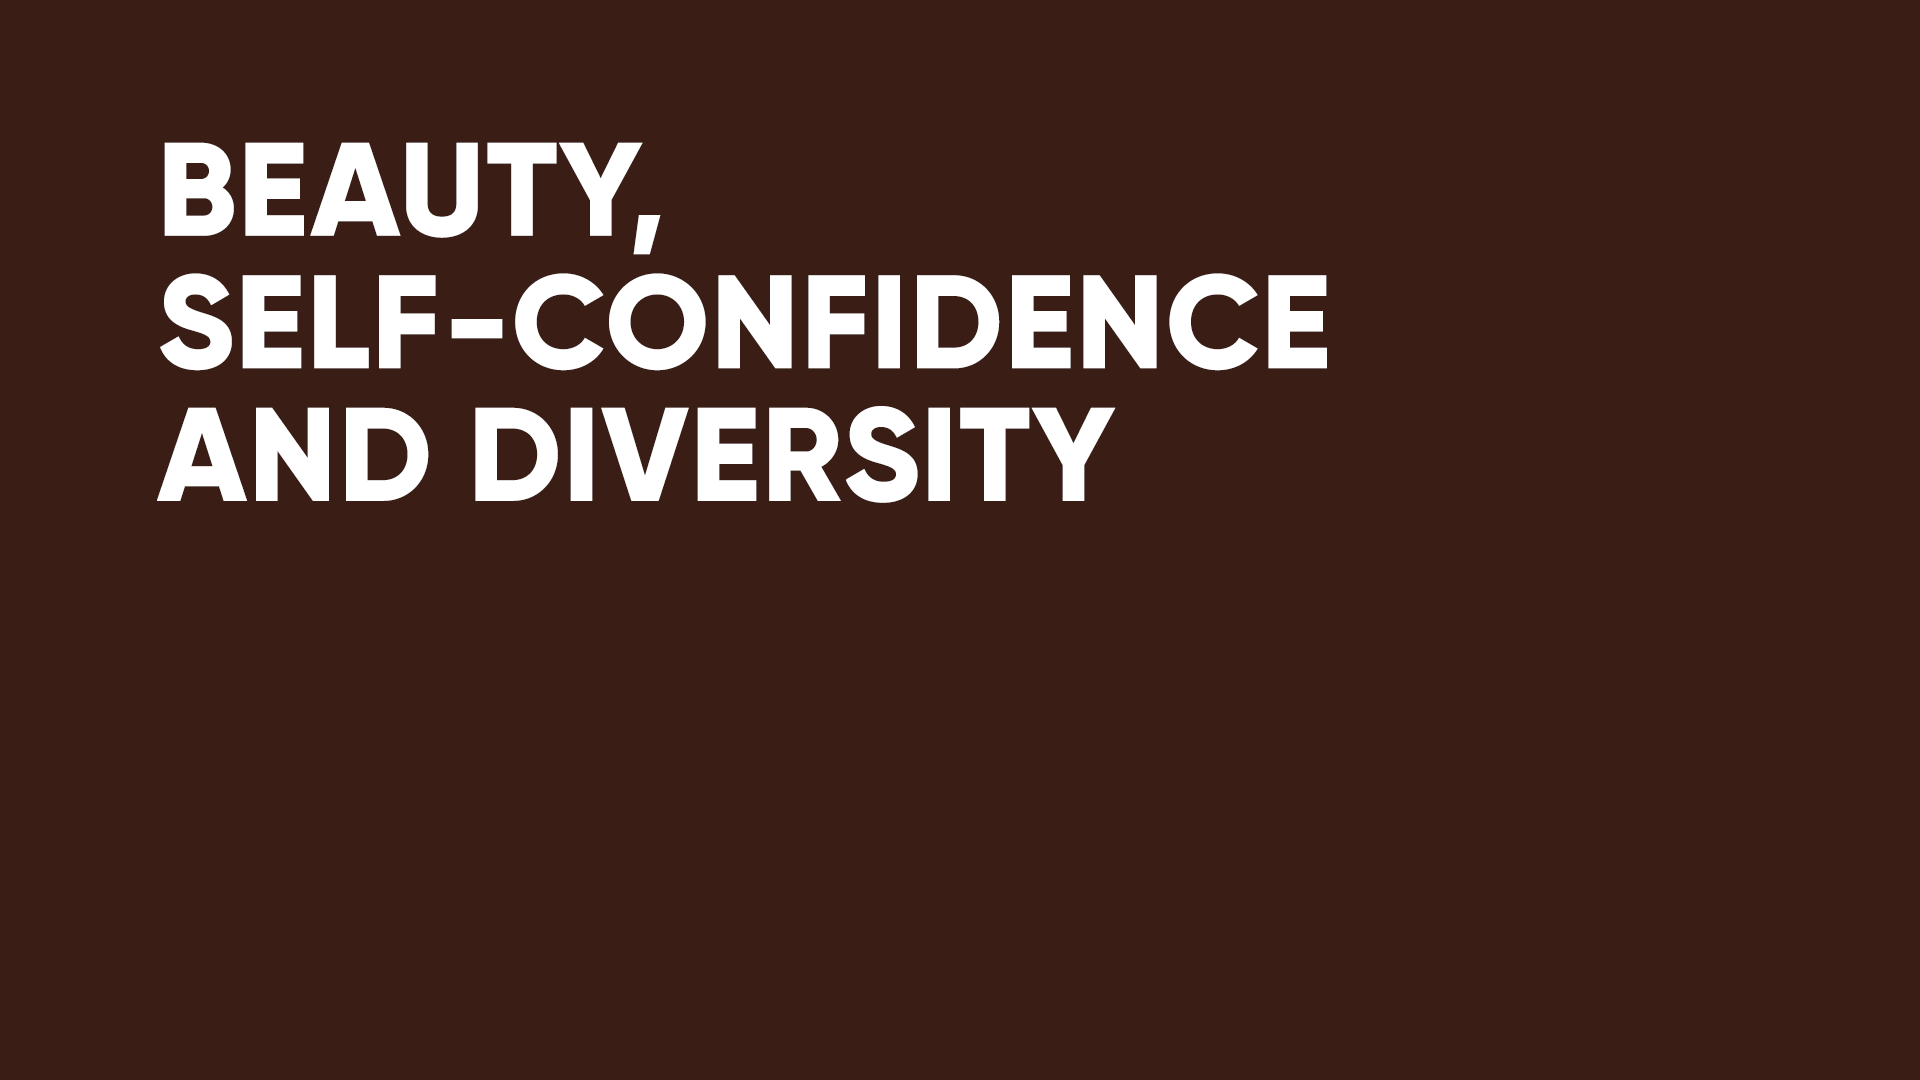 Beauty, Self-Confidence and Diversity